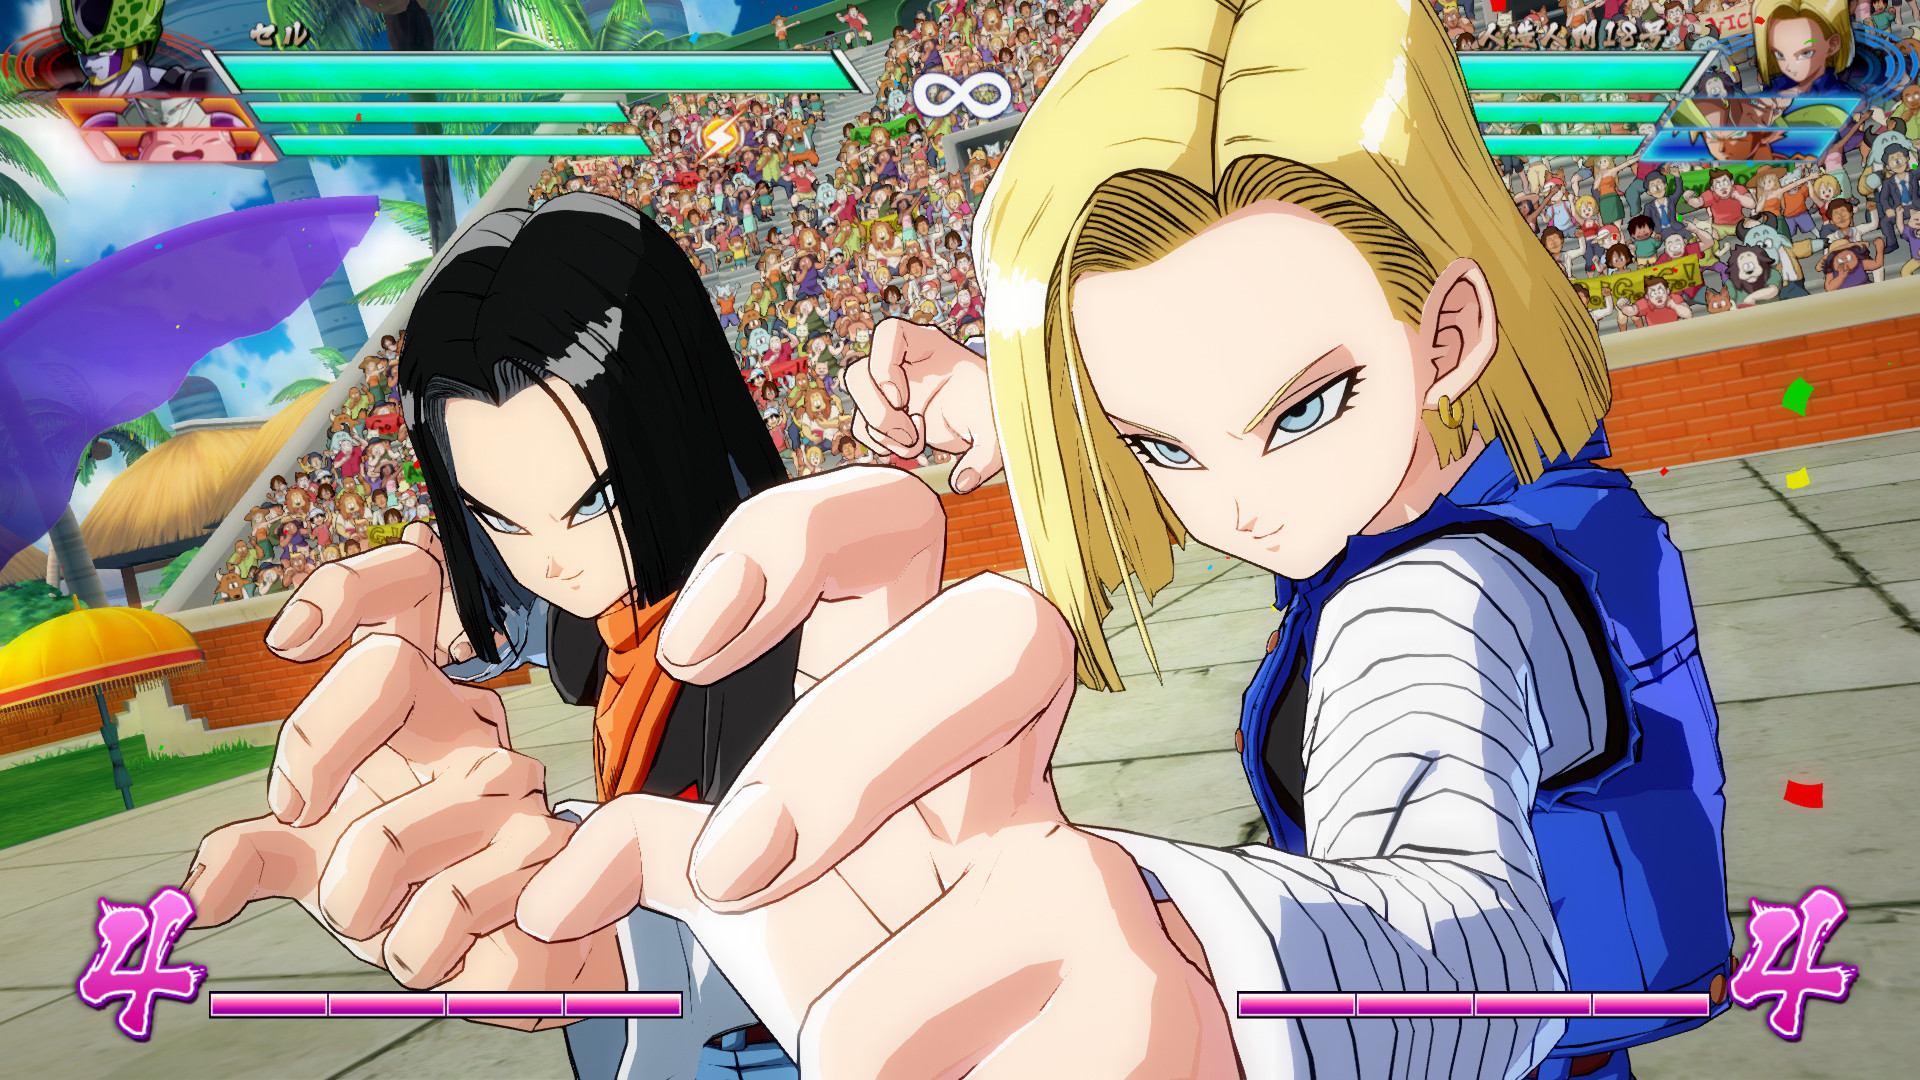 A screenshot from Dragon Ball Fighterz showing Android 18 and Android 17 preparing to fight